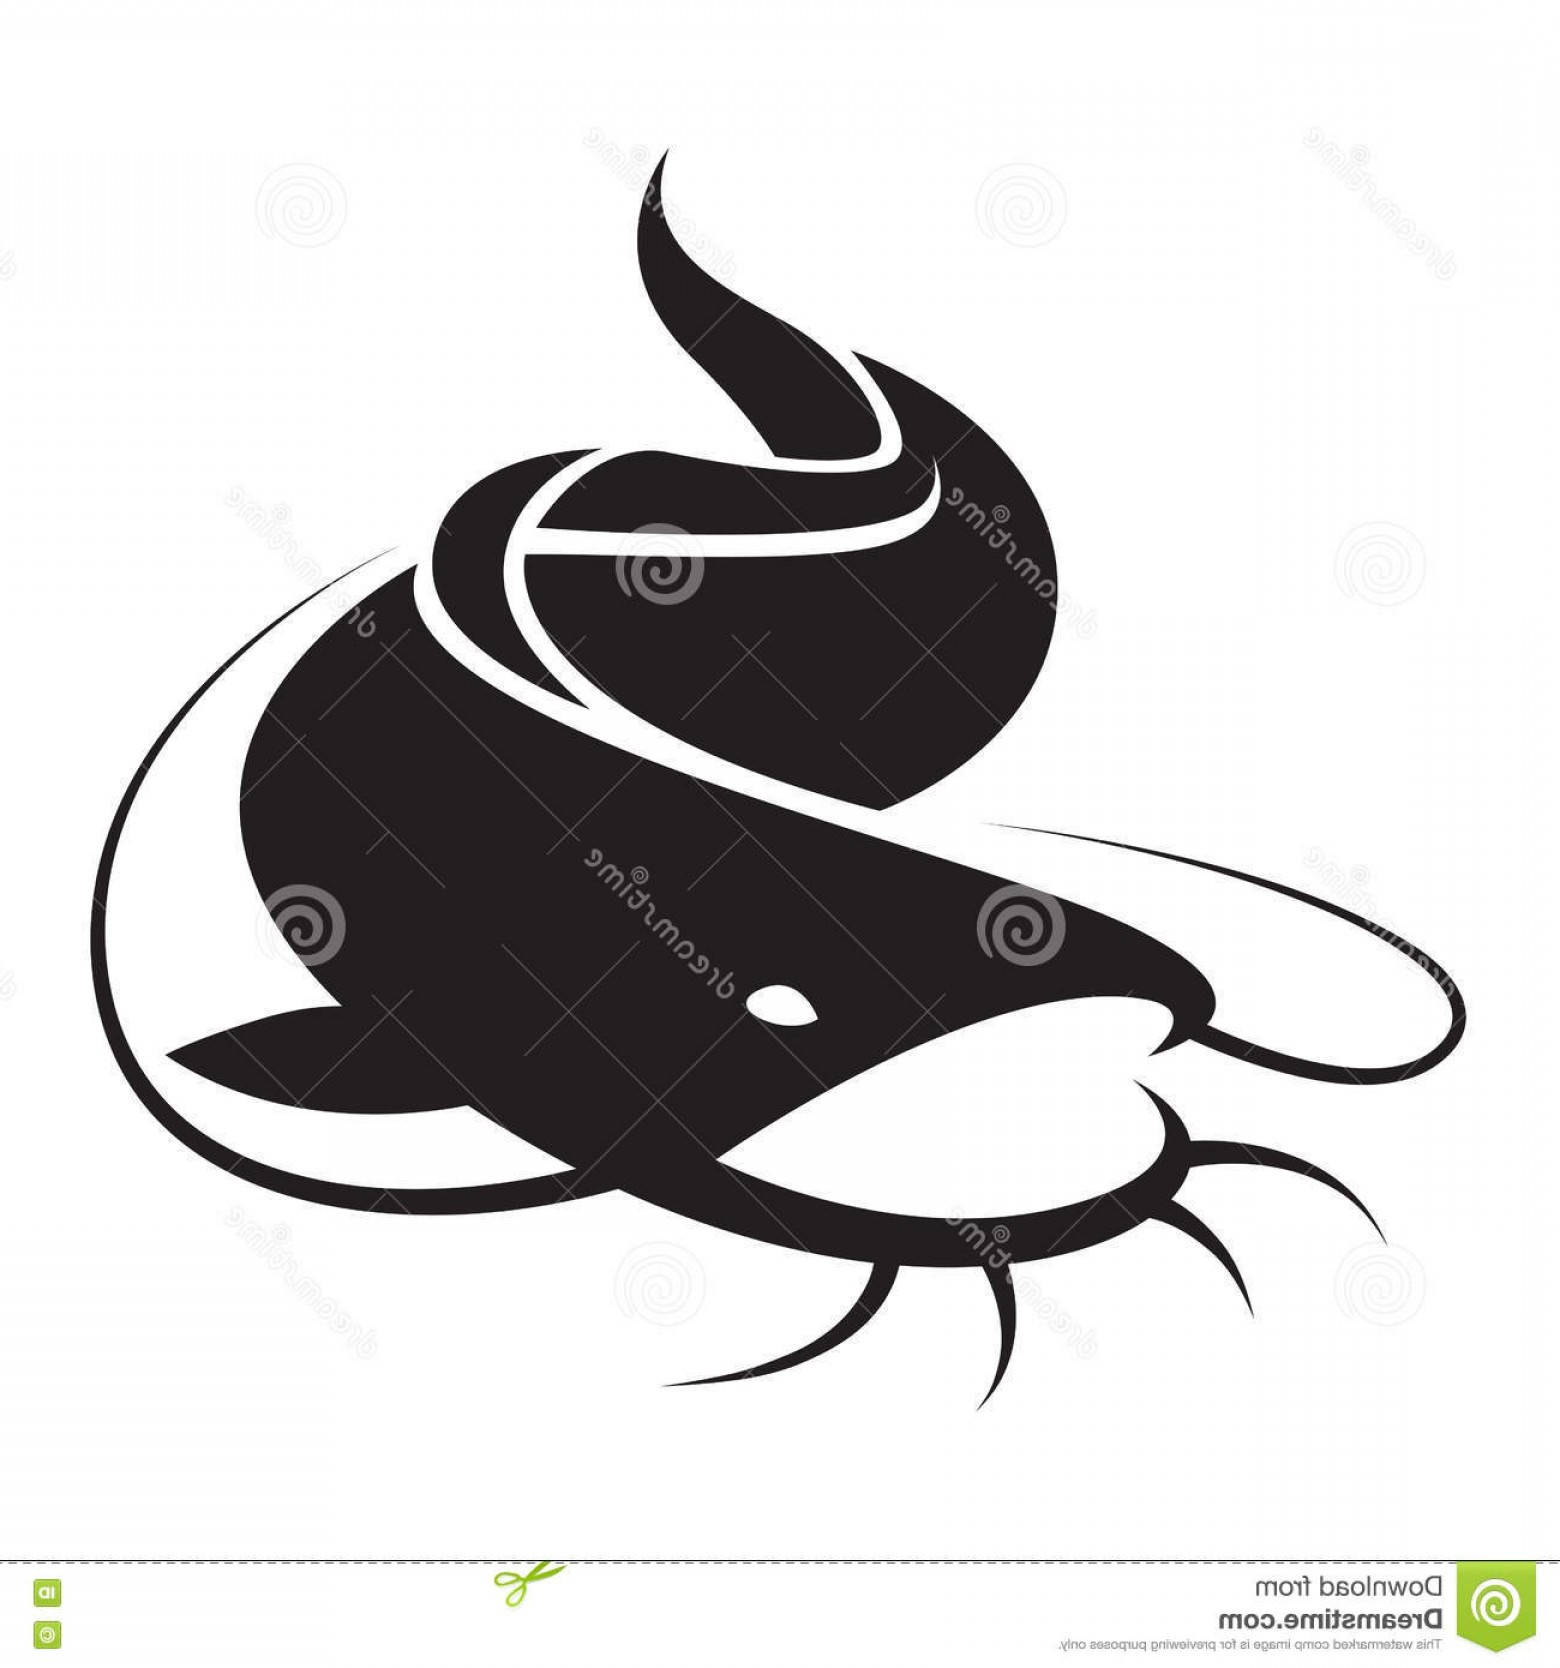 Catfish Vector Logo: Stock Illustration Graphic Catfish Vector White Background Image